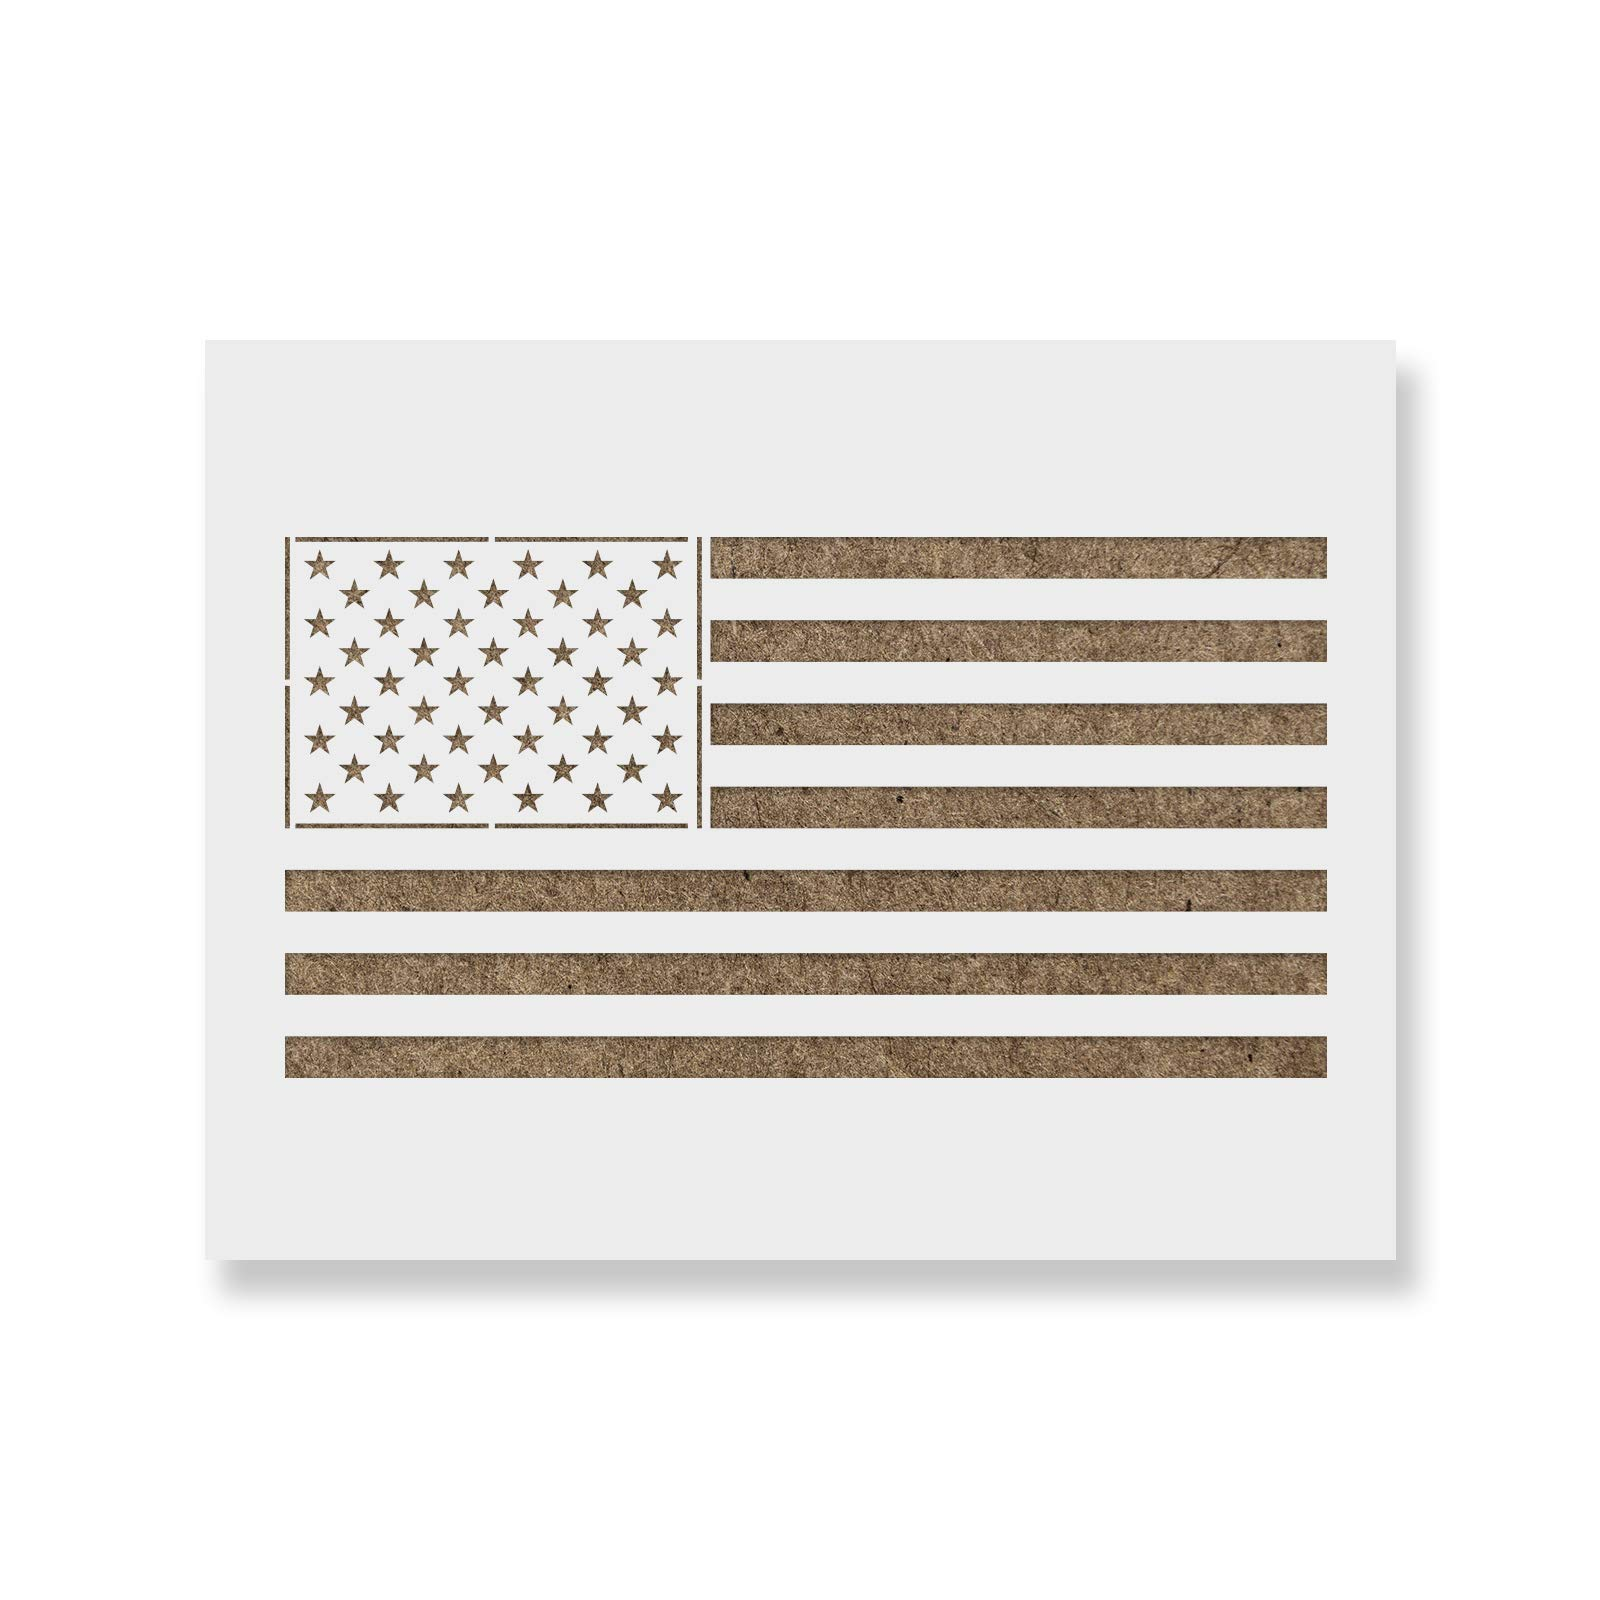 American Flag Stencil Template - Reusable Stencil with Multiple Sizes Available by Stencil Revolution